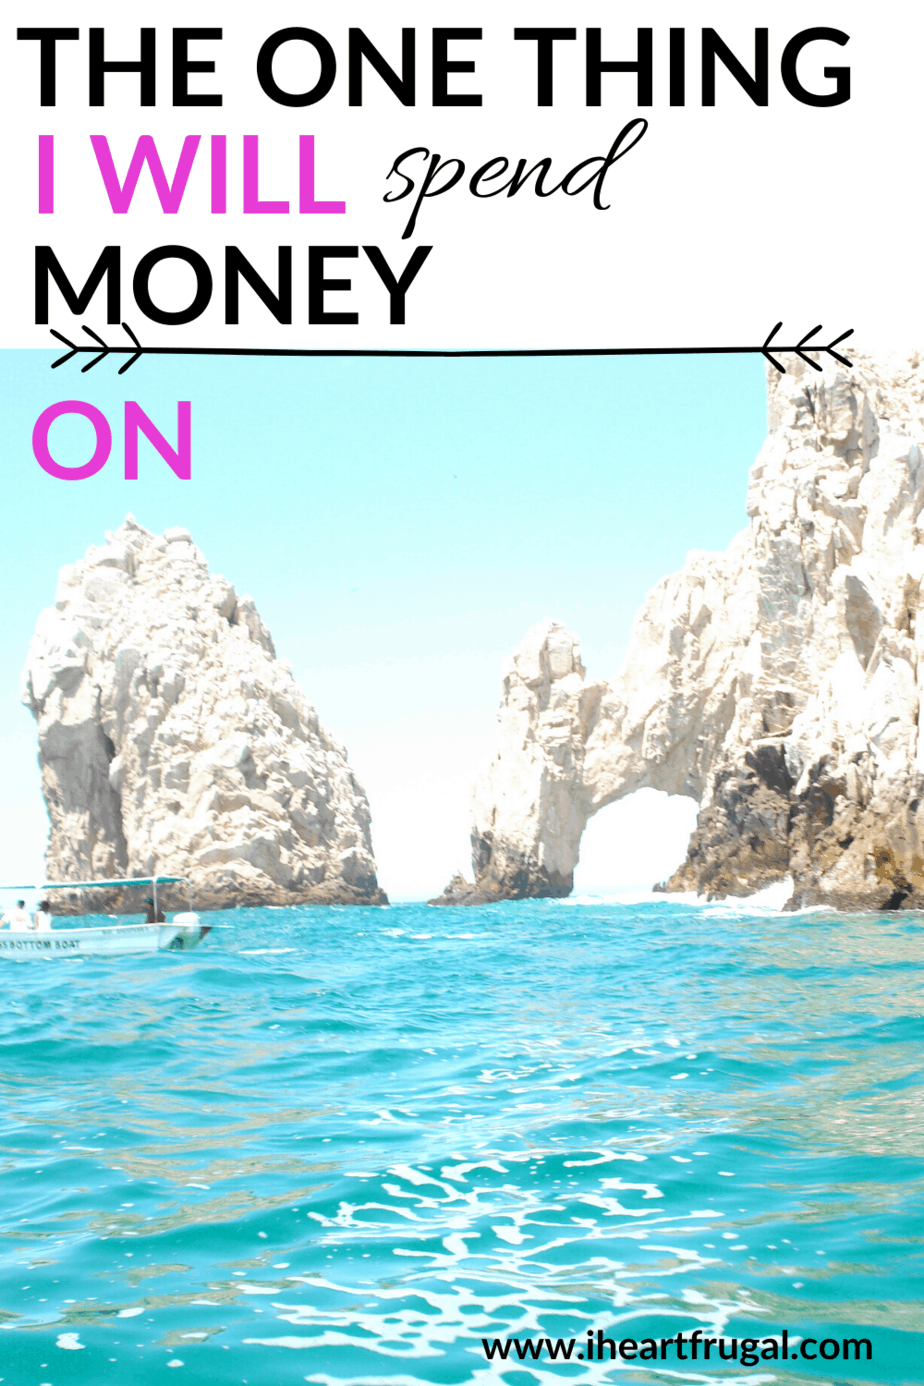 The One Thing I Will Spend Money On - Do you spend too much money? Spending money can be a good thing if you know what to spend money on. Find out what this frugal living blogger spends money on. #savemoney #budget #personalfinance